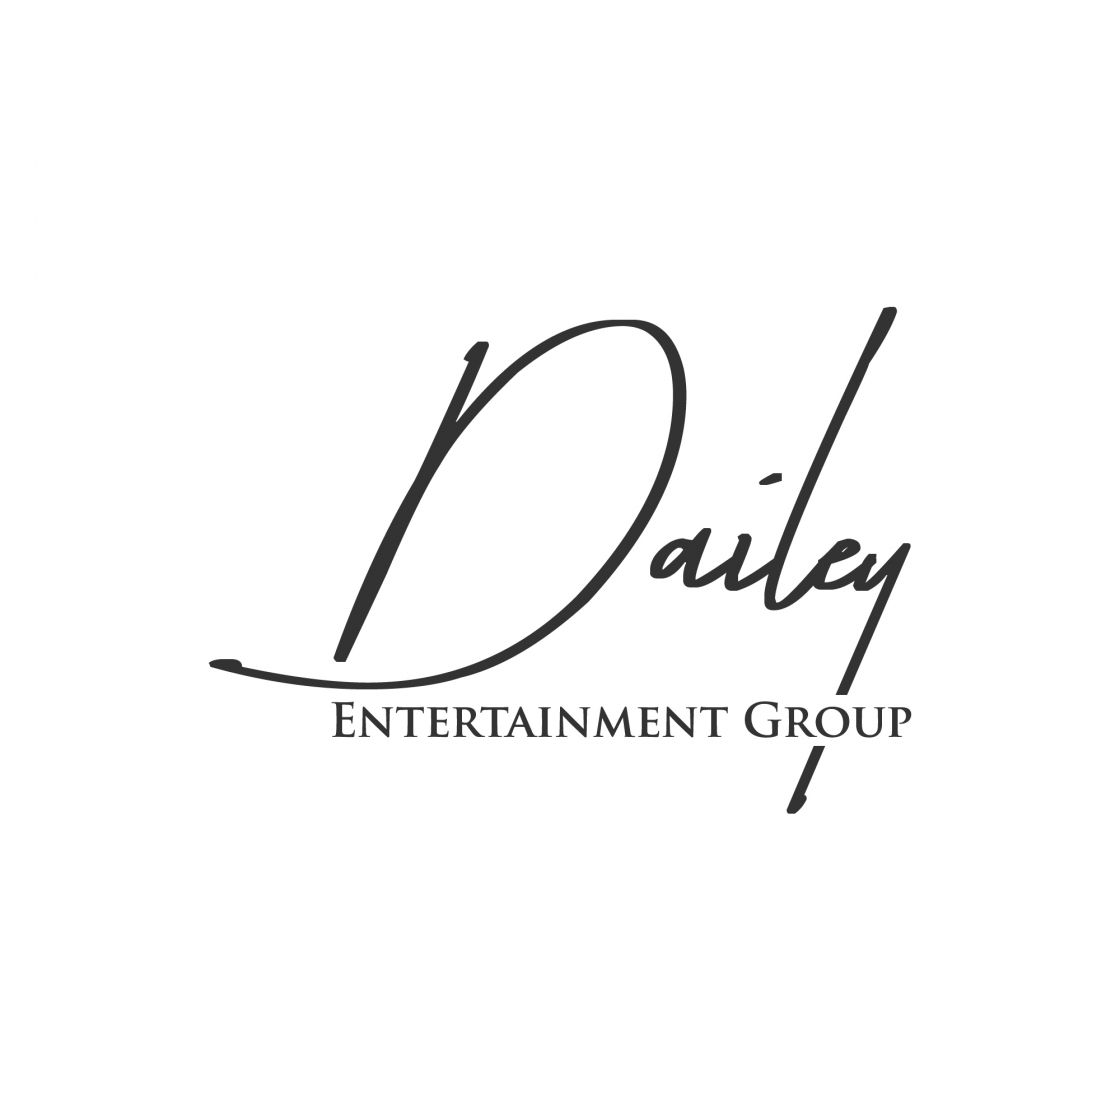 Independent Artist Who Are Looking for a Label? the Dailey Entertainment Group seeks talent.